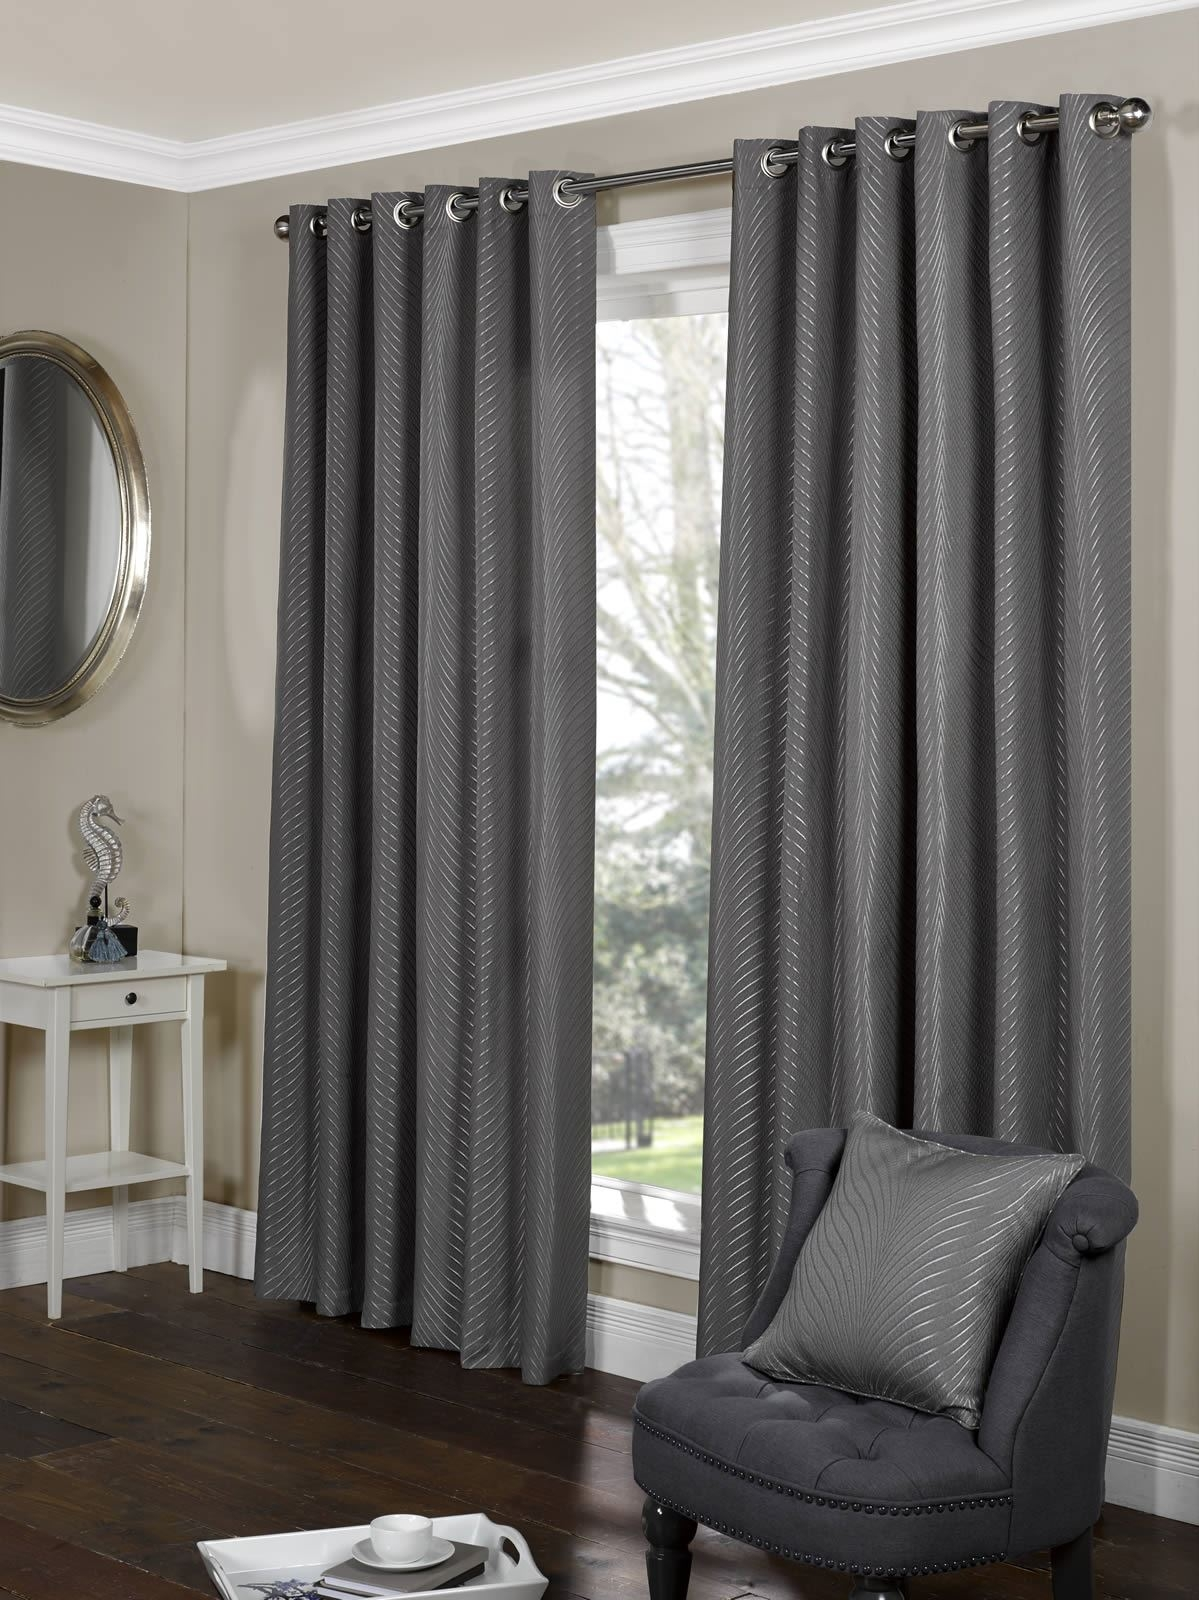 Tibet Charcoal Silver Lined Eyelet Ringtop Curtains Heavy Weight In Heavy Lined Curtains (Image 15 of 15)